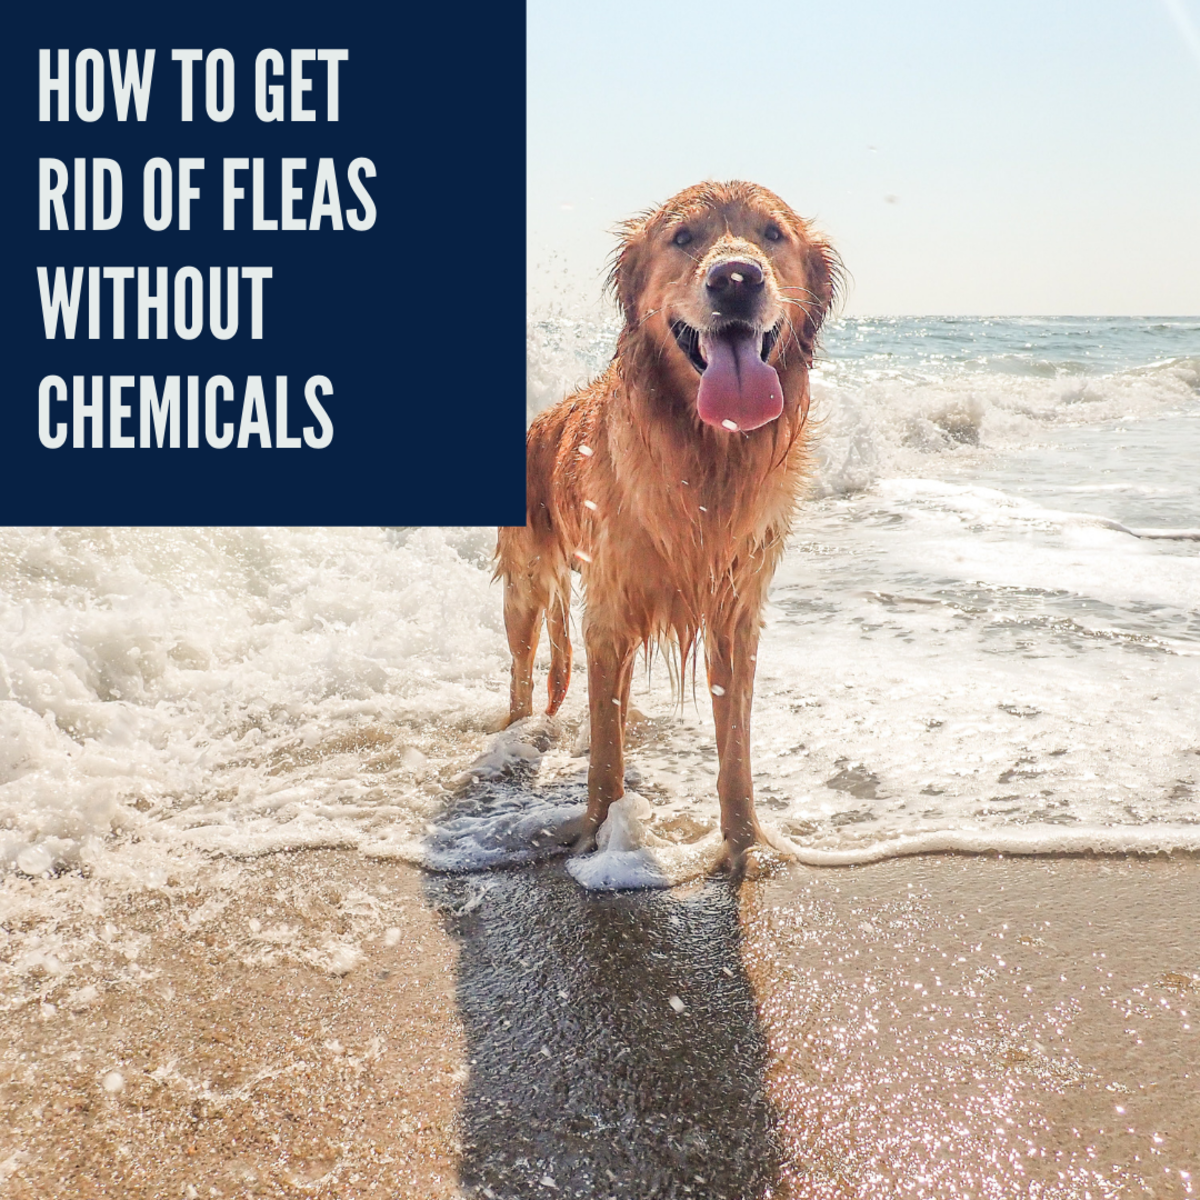 There are ways to deal with fleas without using chemicals.